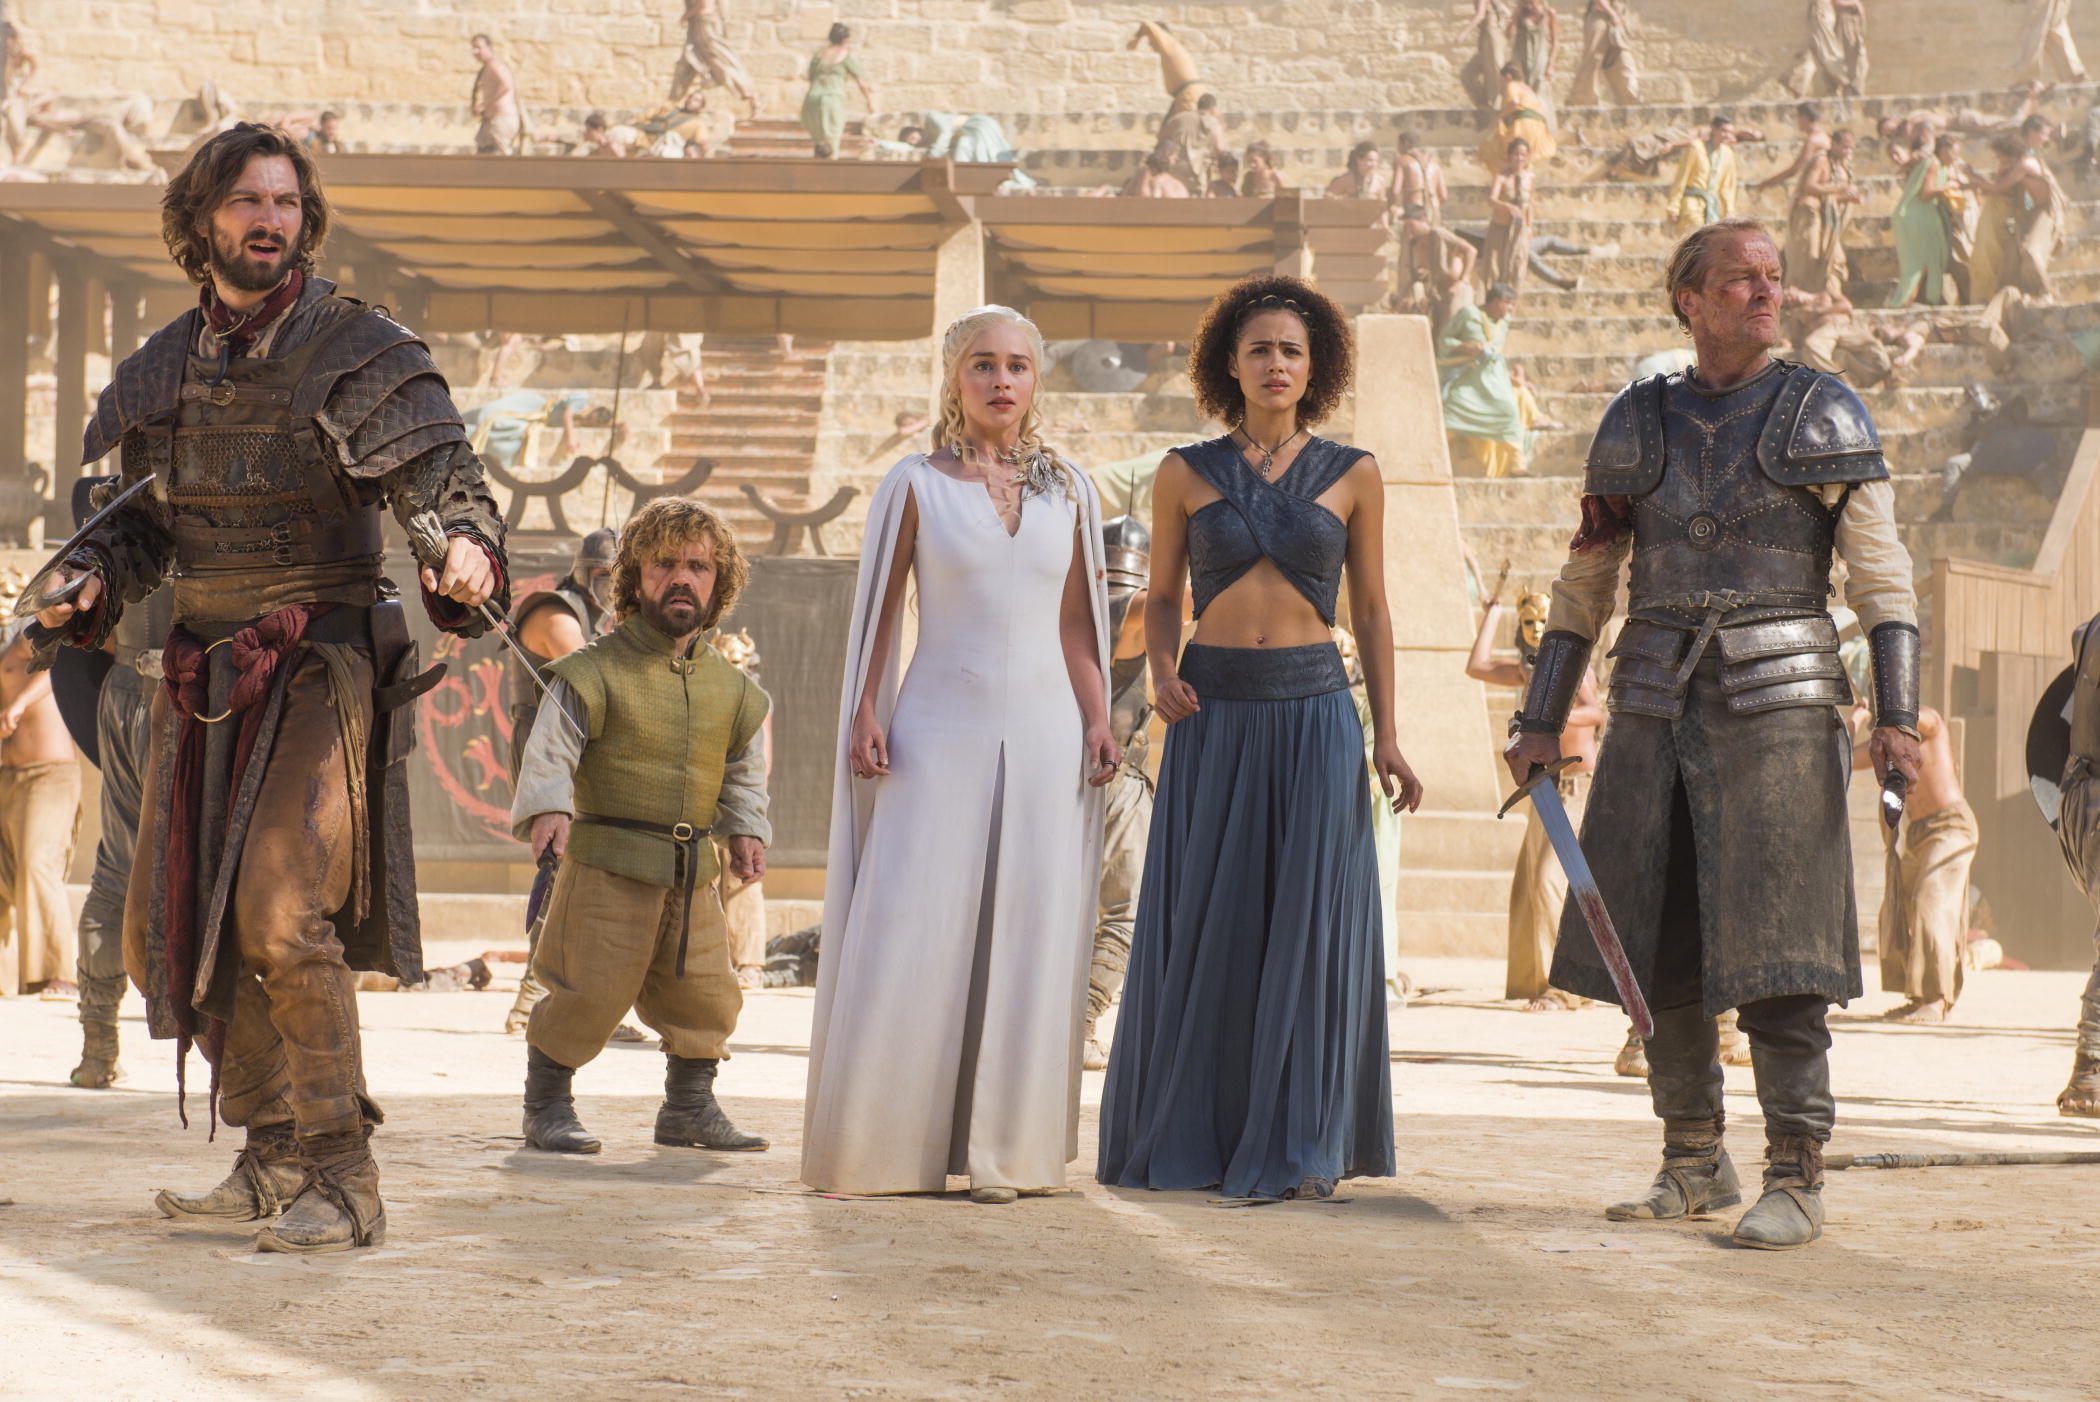 """Michiel Huisman, Peter Dinklage, Emilia Clarke, Nathalie Emmanuel and Iain Glen in """"Game of Thrones,"""" season five. This scene was shot in a bullring in Osuna, Seville, Spain, which is a stop on a 10-day tour of Spain and Morocco offered by the Zicasso travel agency."""